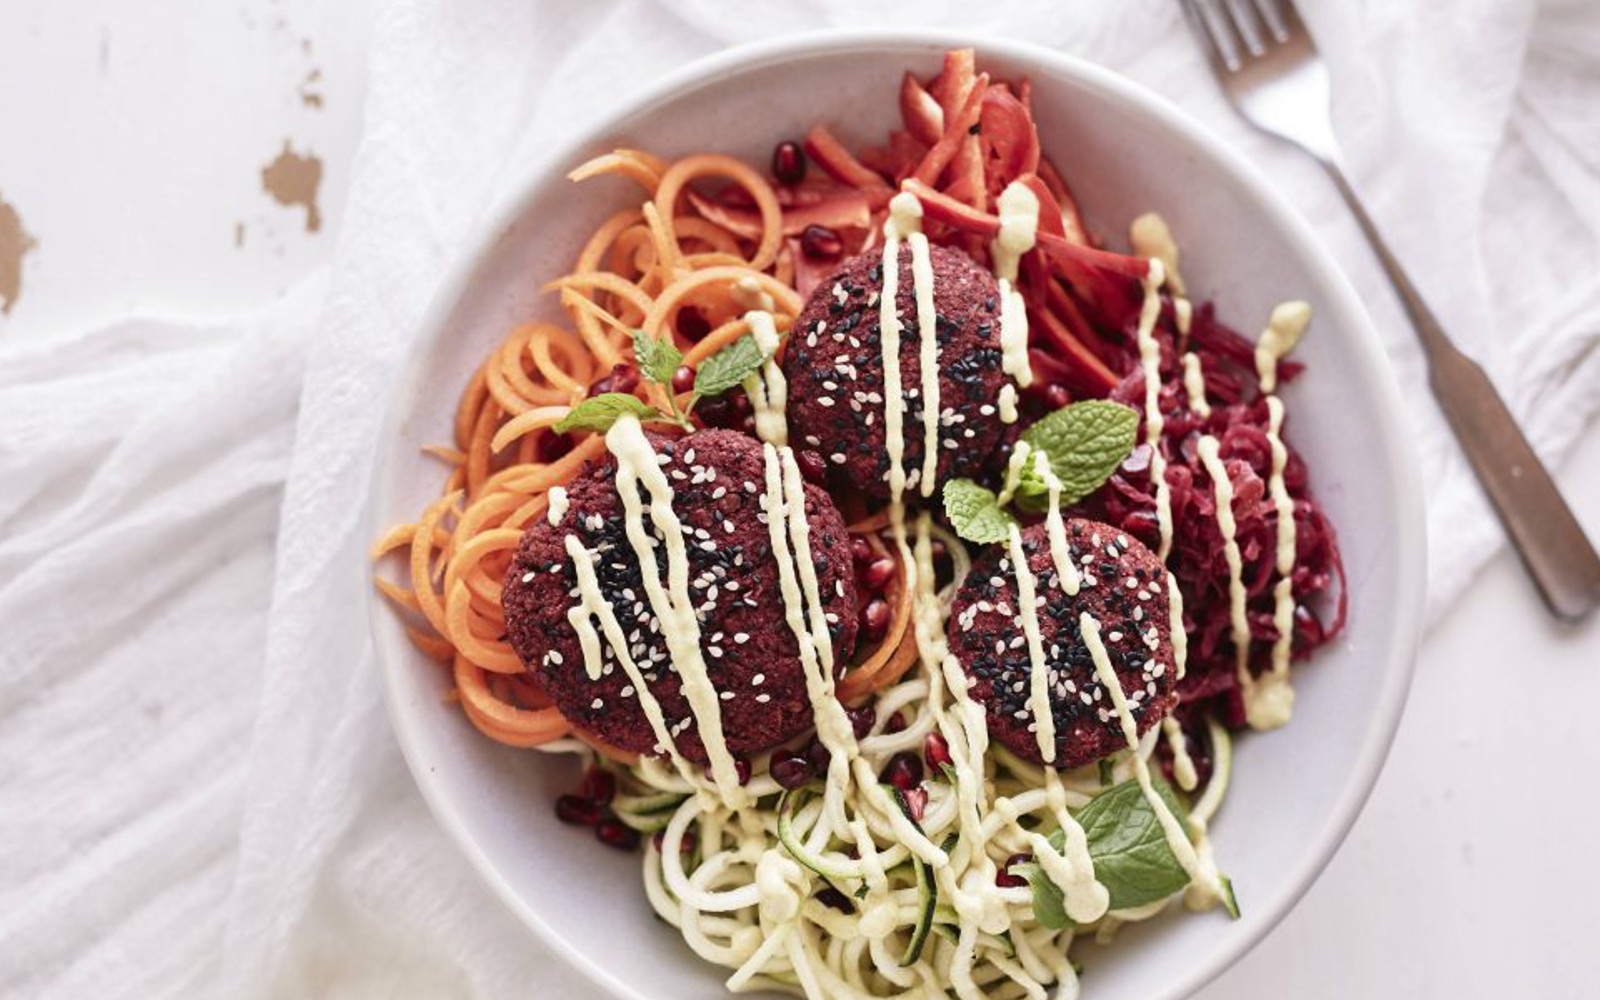 Gluten-Free Vegan Beetroot Falafel Rainbow Salad with topping